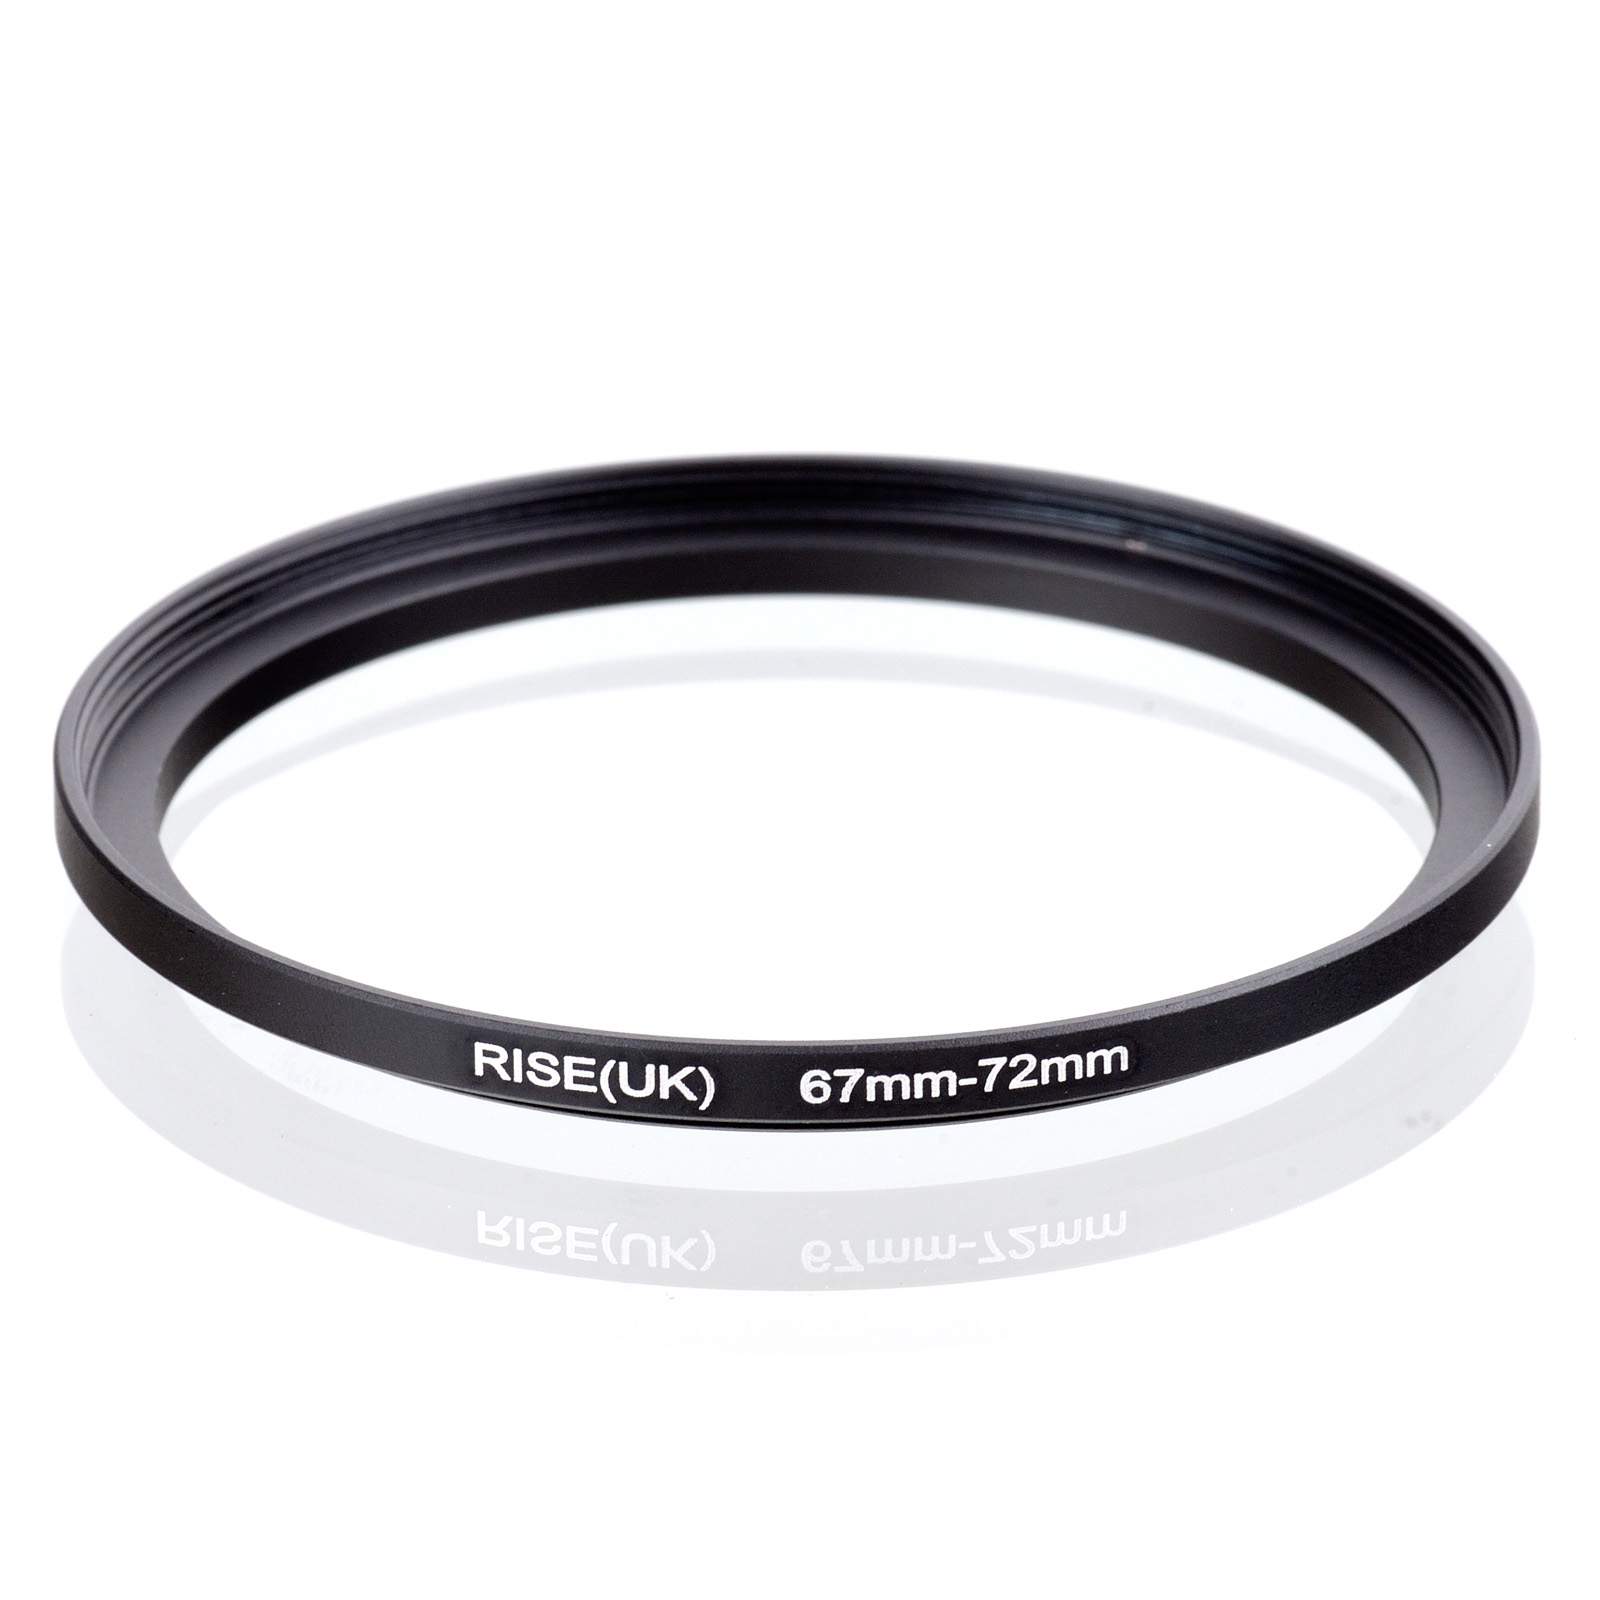 RISE(UK) 67mm-72mm 67-72 Mm 67 To 72 Step Up Filter Ring Adapter Black